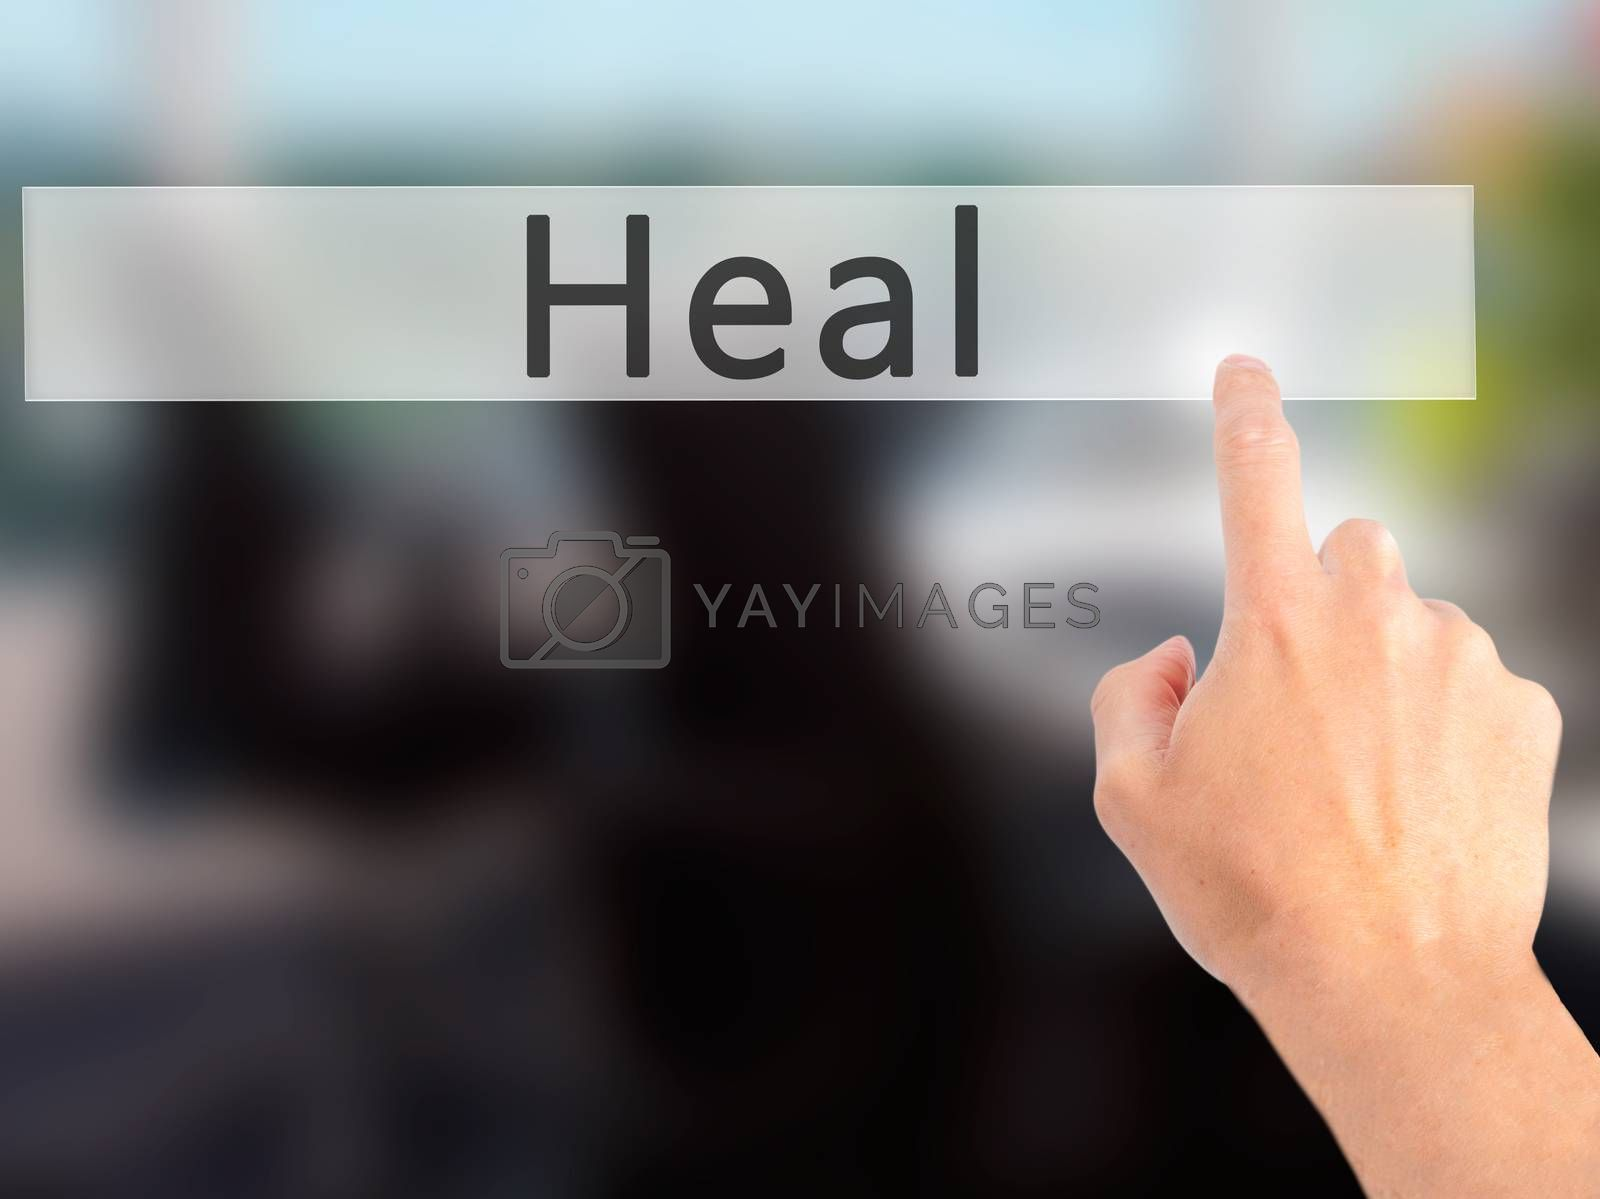 Heal - Hand pressing a button on blurred background concept on v by netsay.net